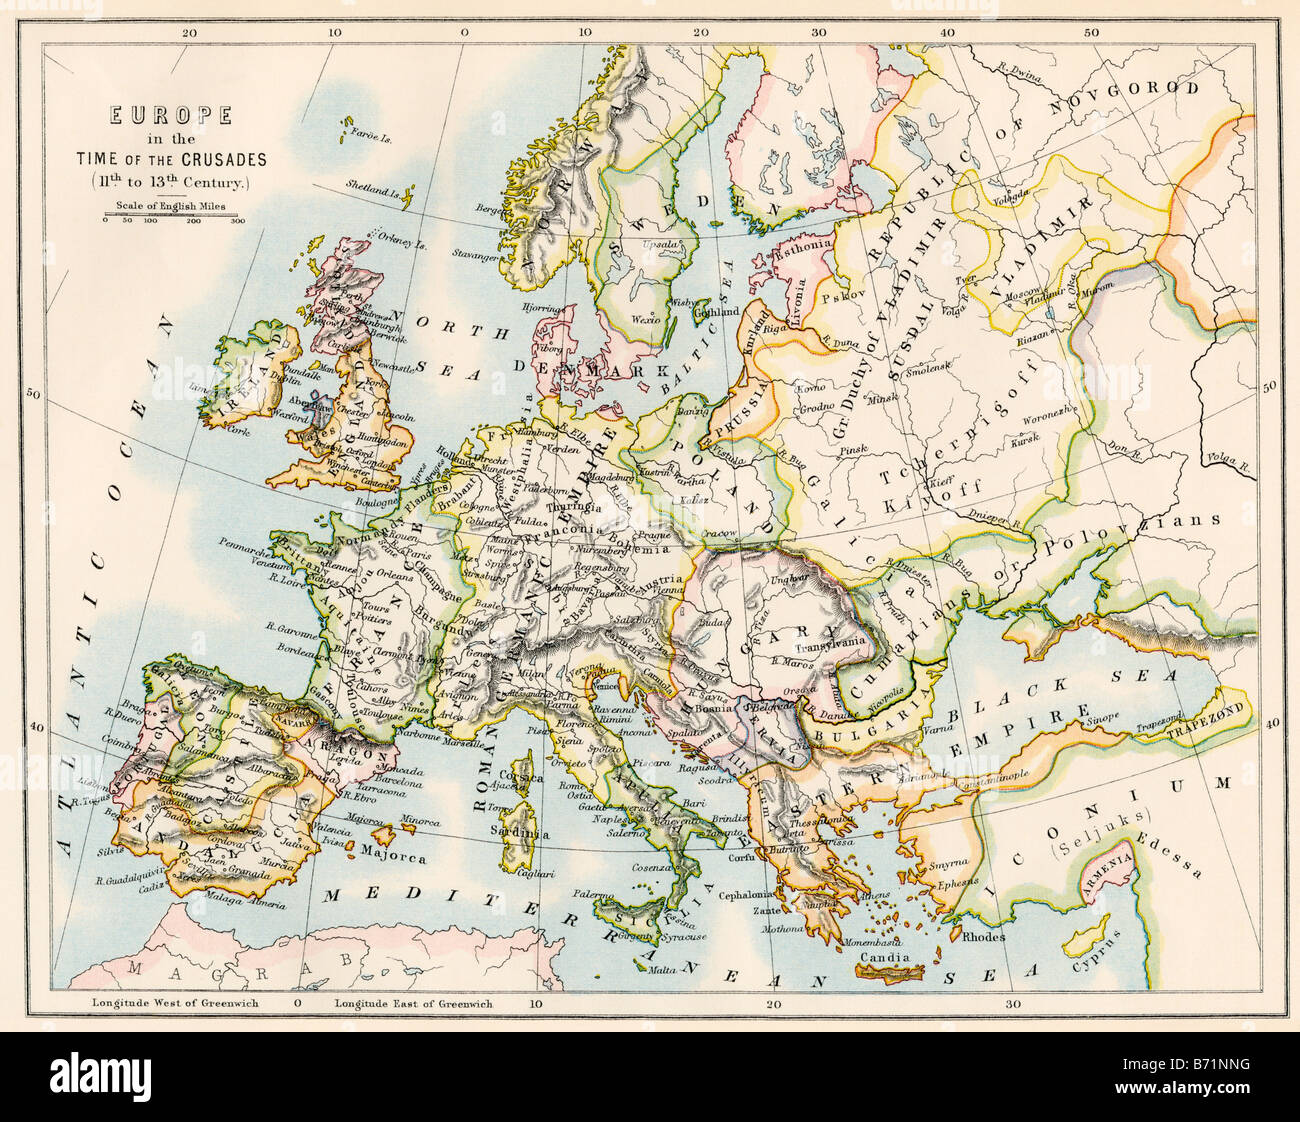 Map of Europe during the Crusades 1000 to 1200 AD Stock Photo